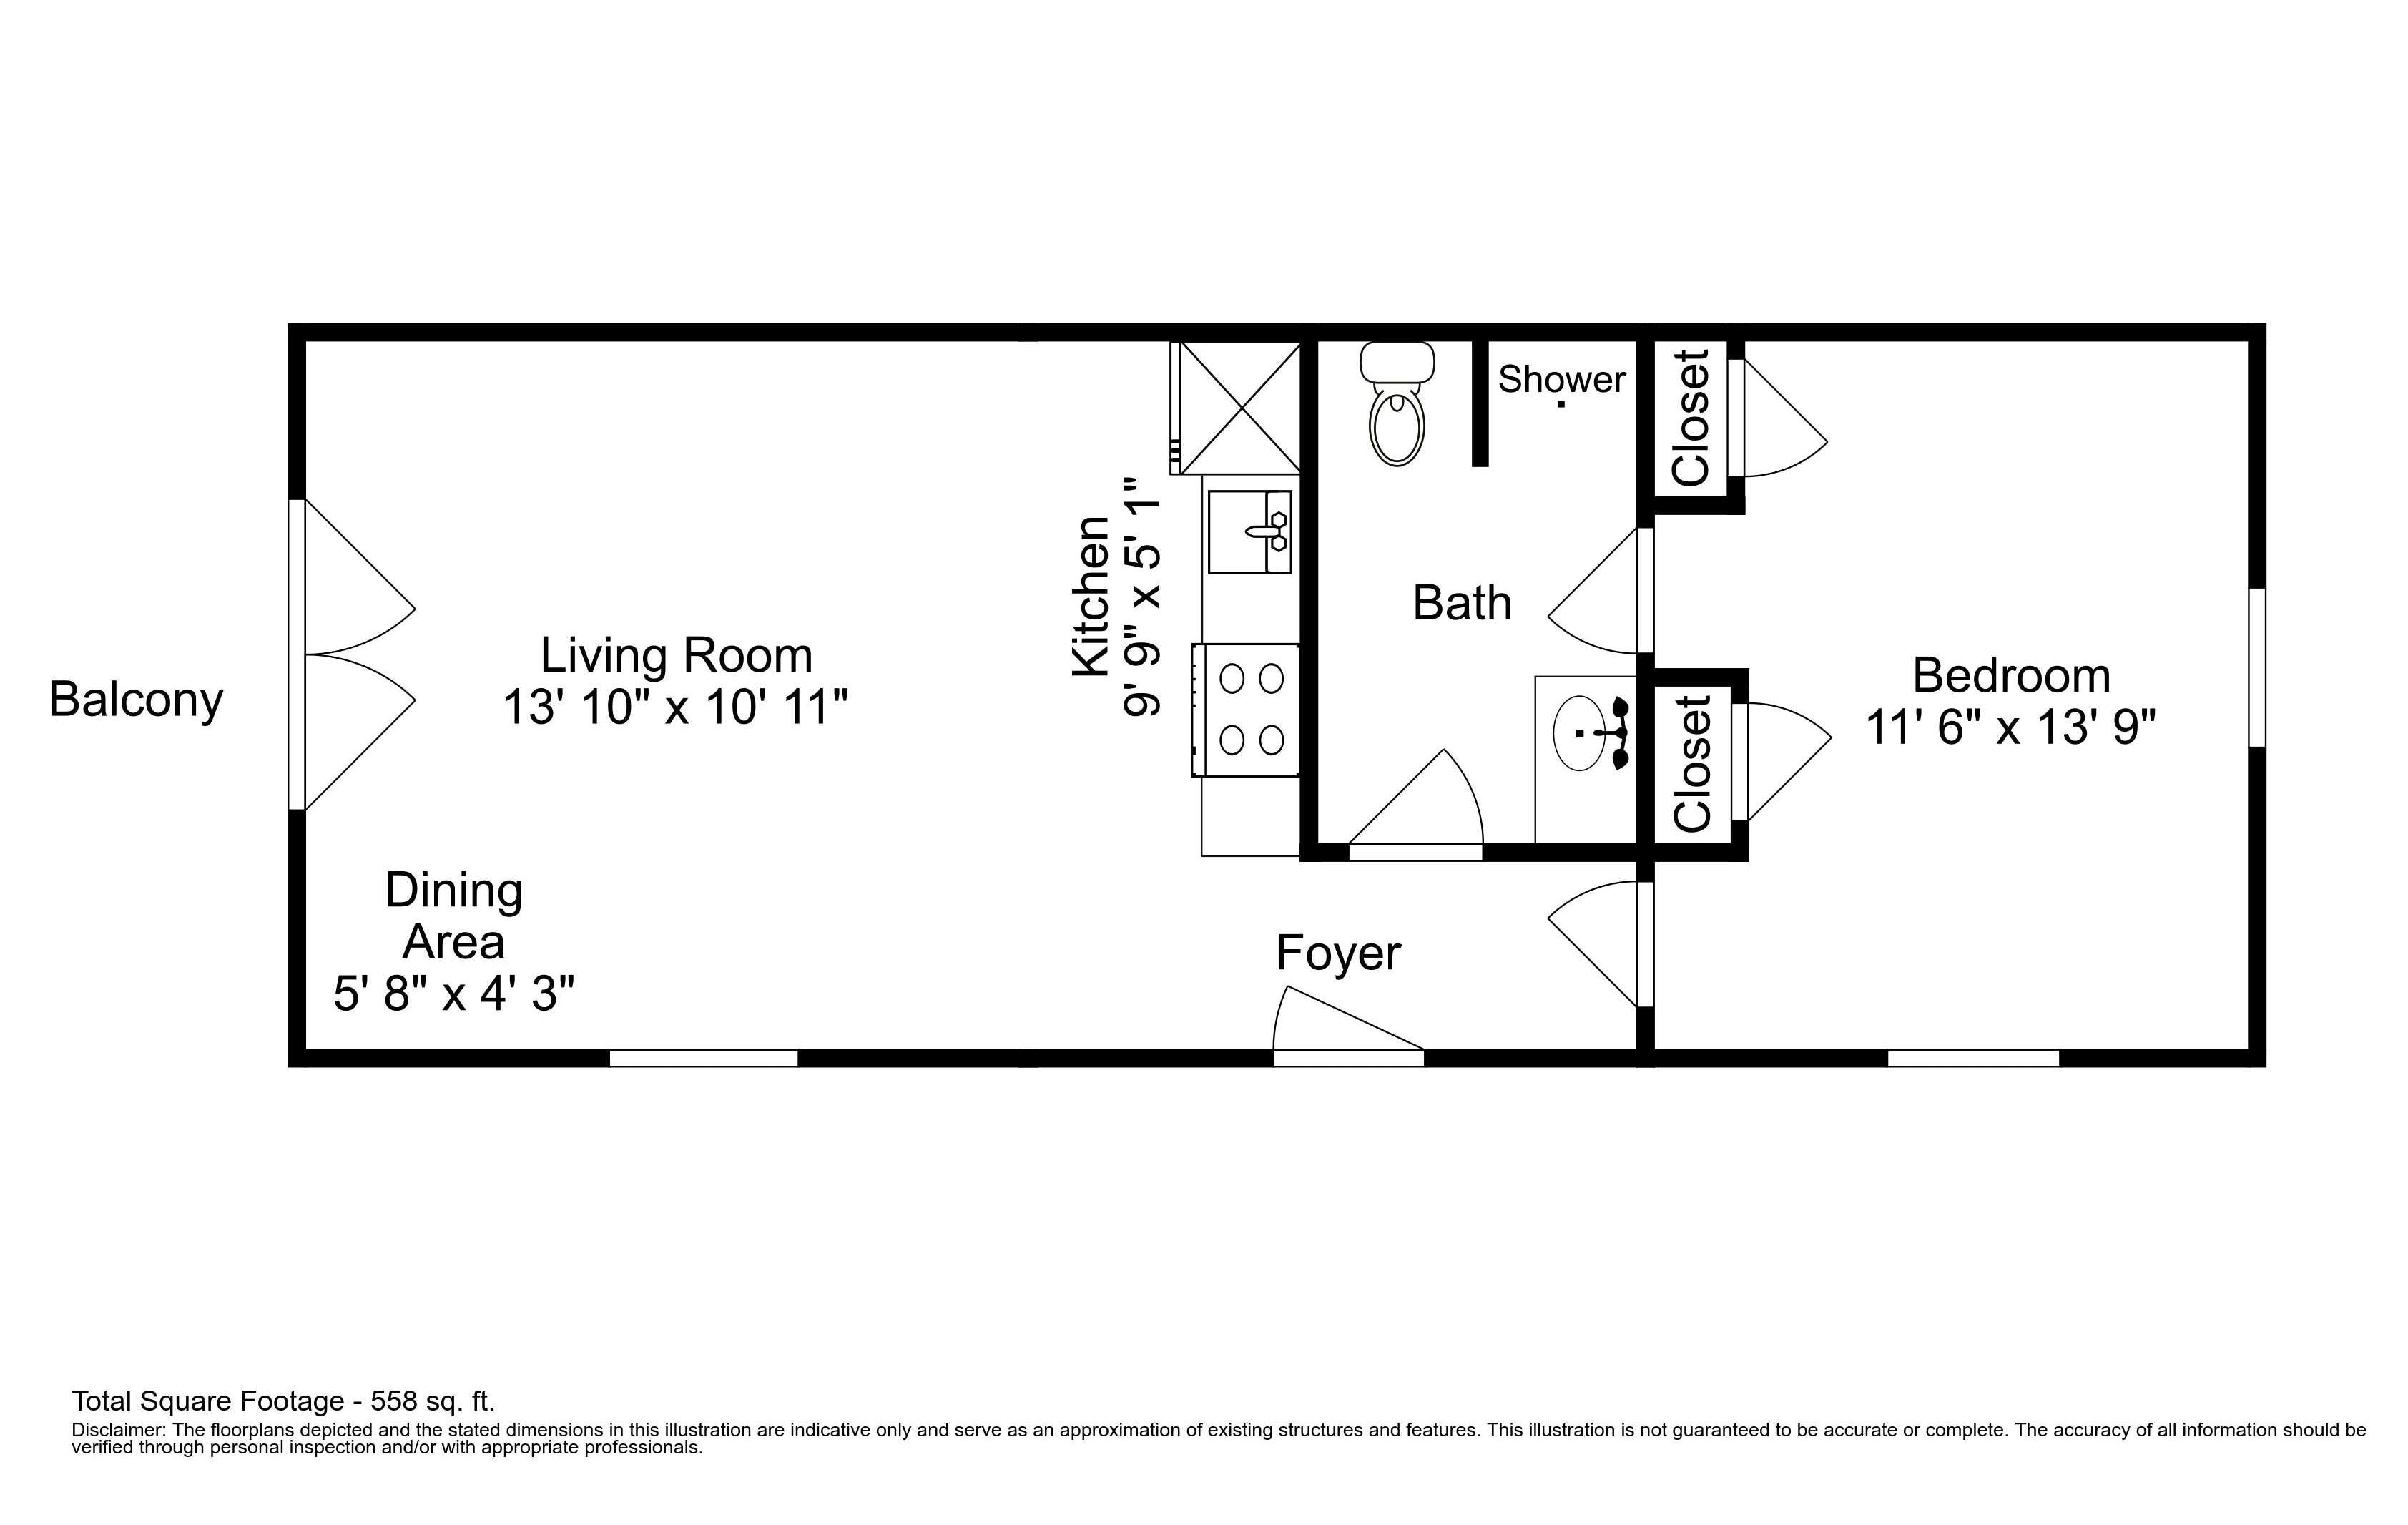 Disclaimer: This floor plan is an approximation and may not include the most recent information.